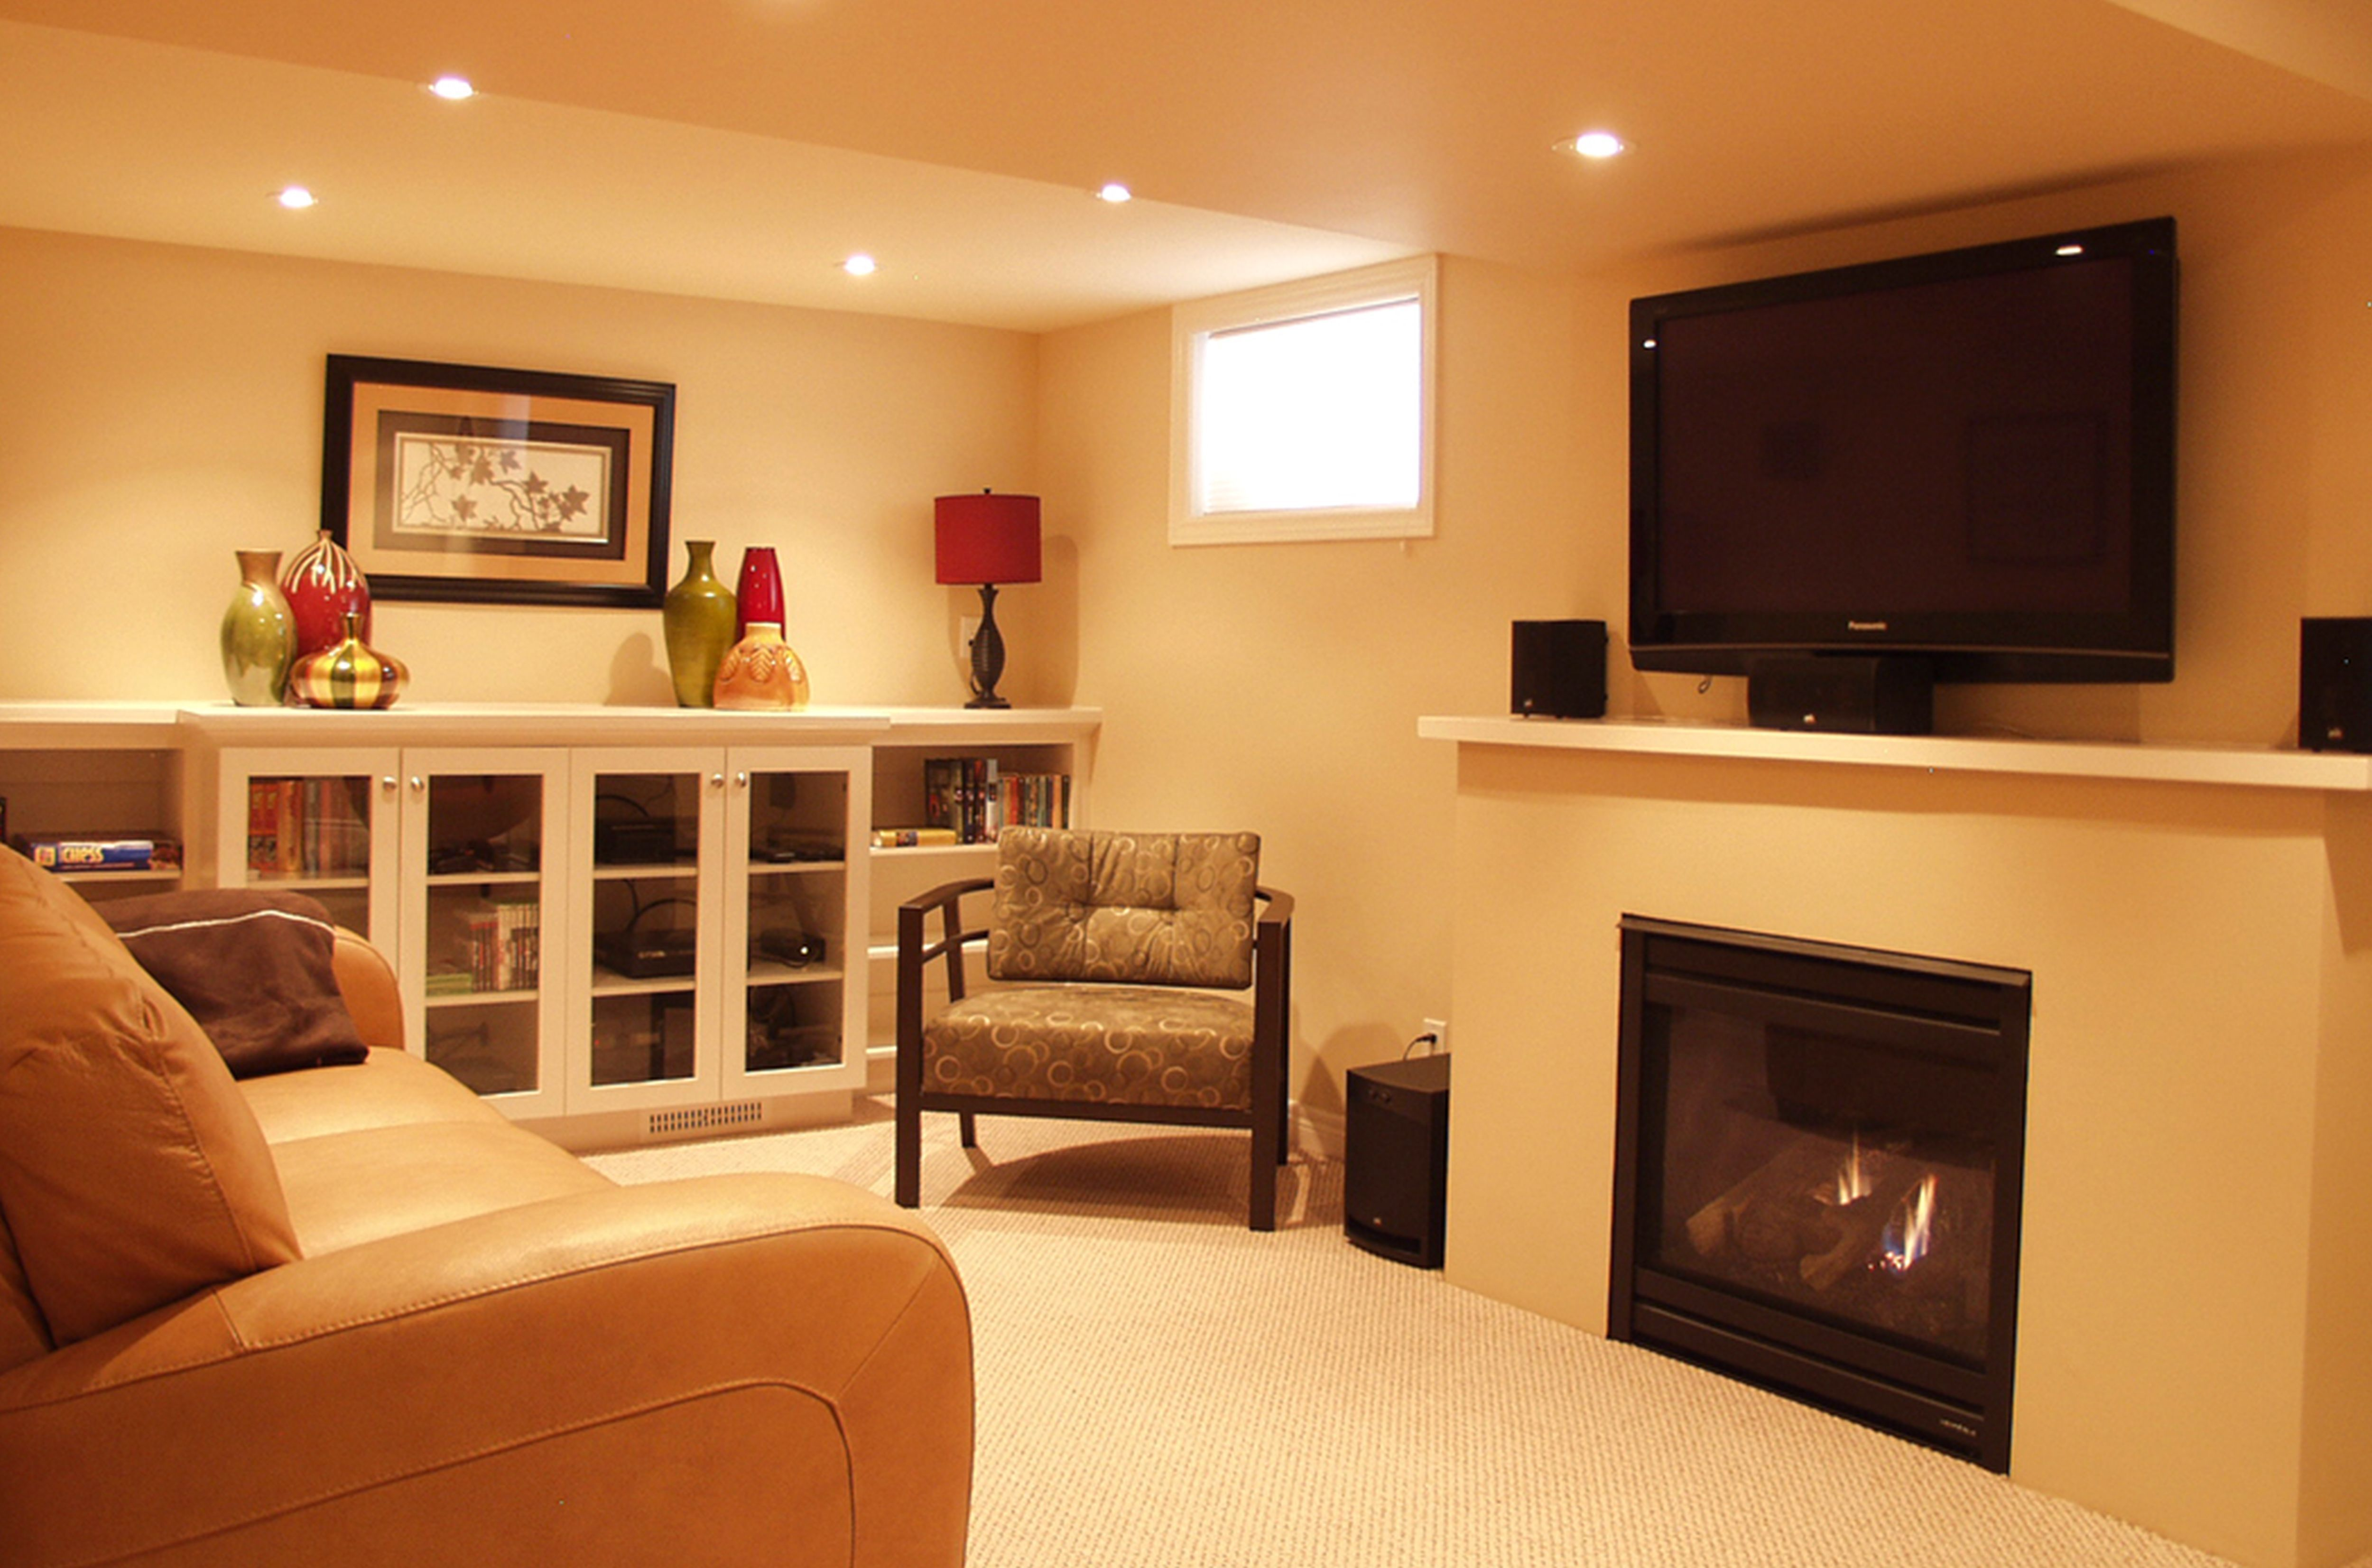 Basement Family Room Design Ideas Copper Room Design Ideas  Warm Wall Colors Creating A Serene